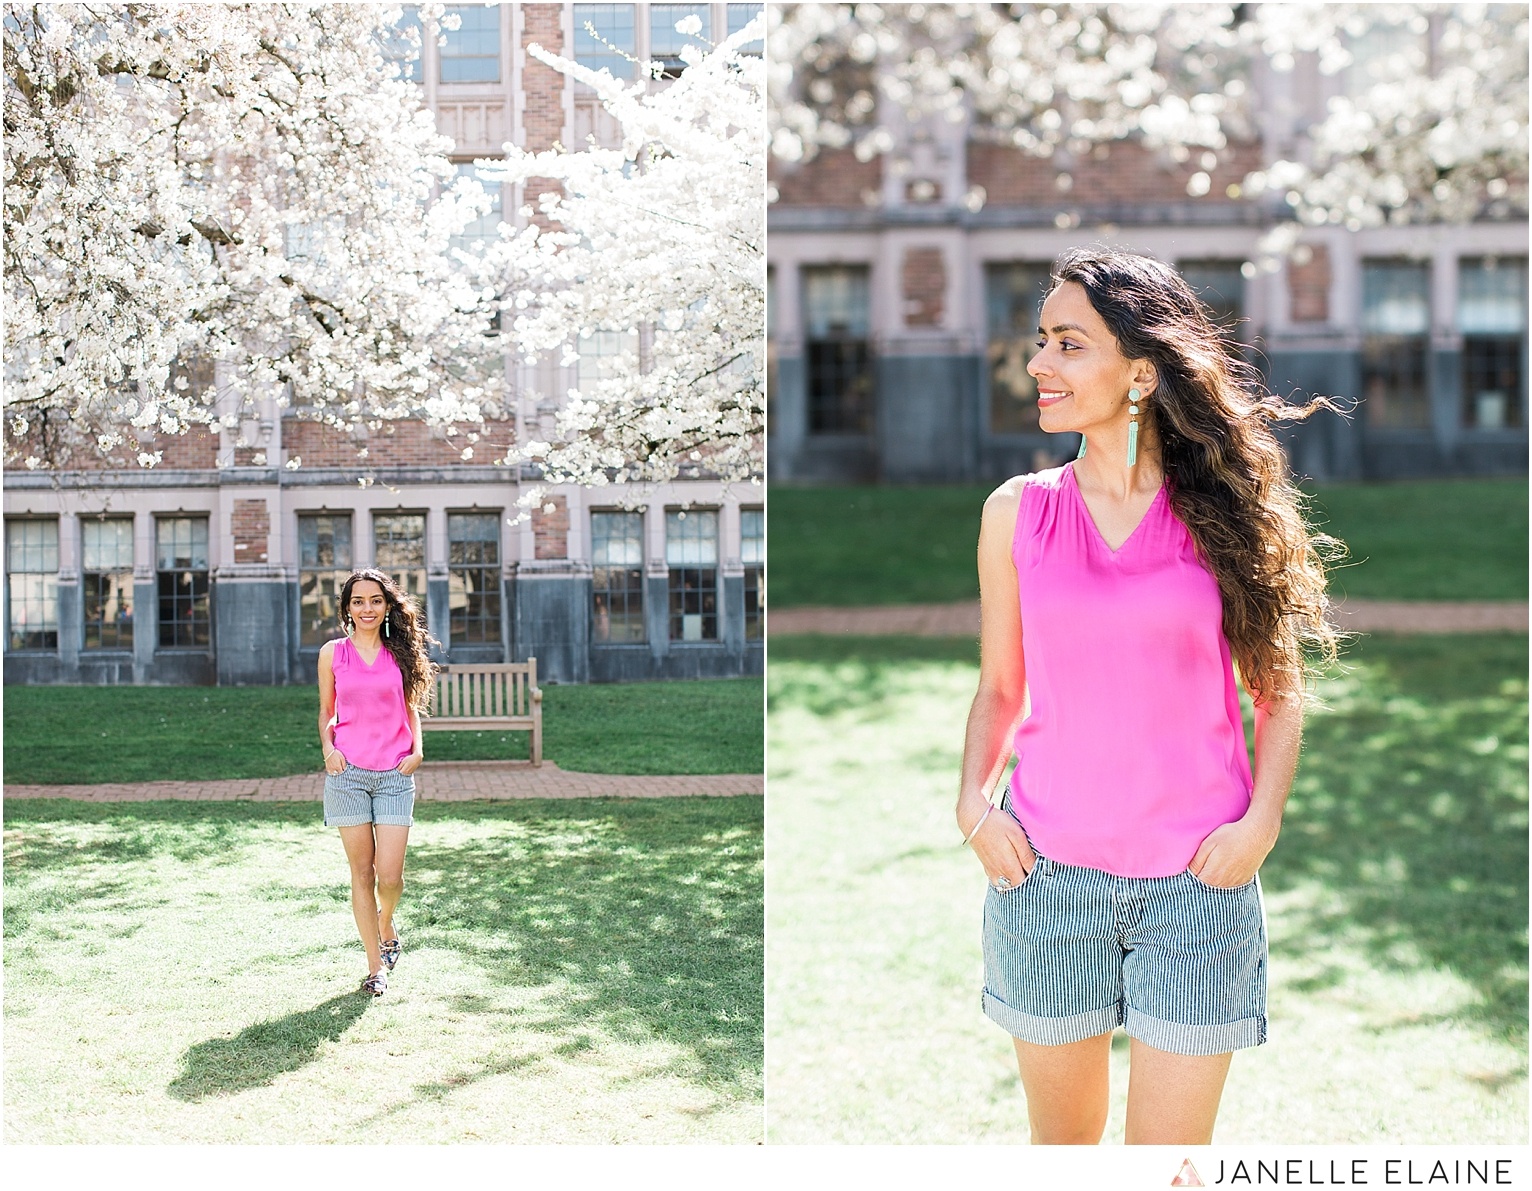 Sufience-Harkirat-spring portrait session-cherry blossoms-uw-seattle photographer janelle elaine-128.jpg